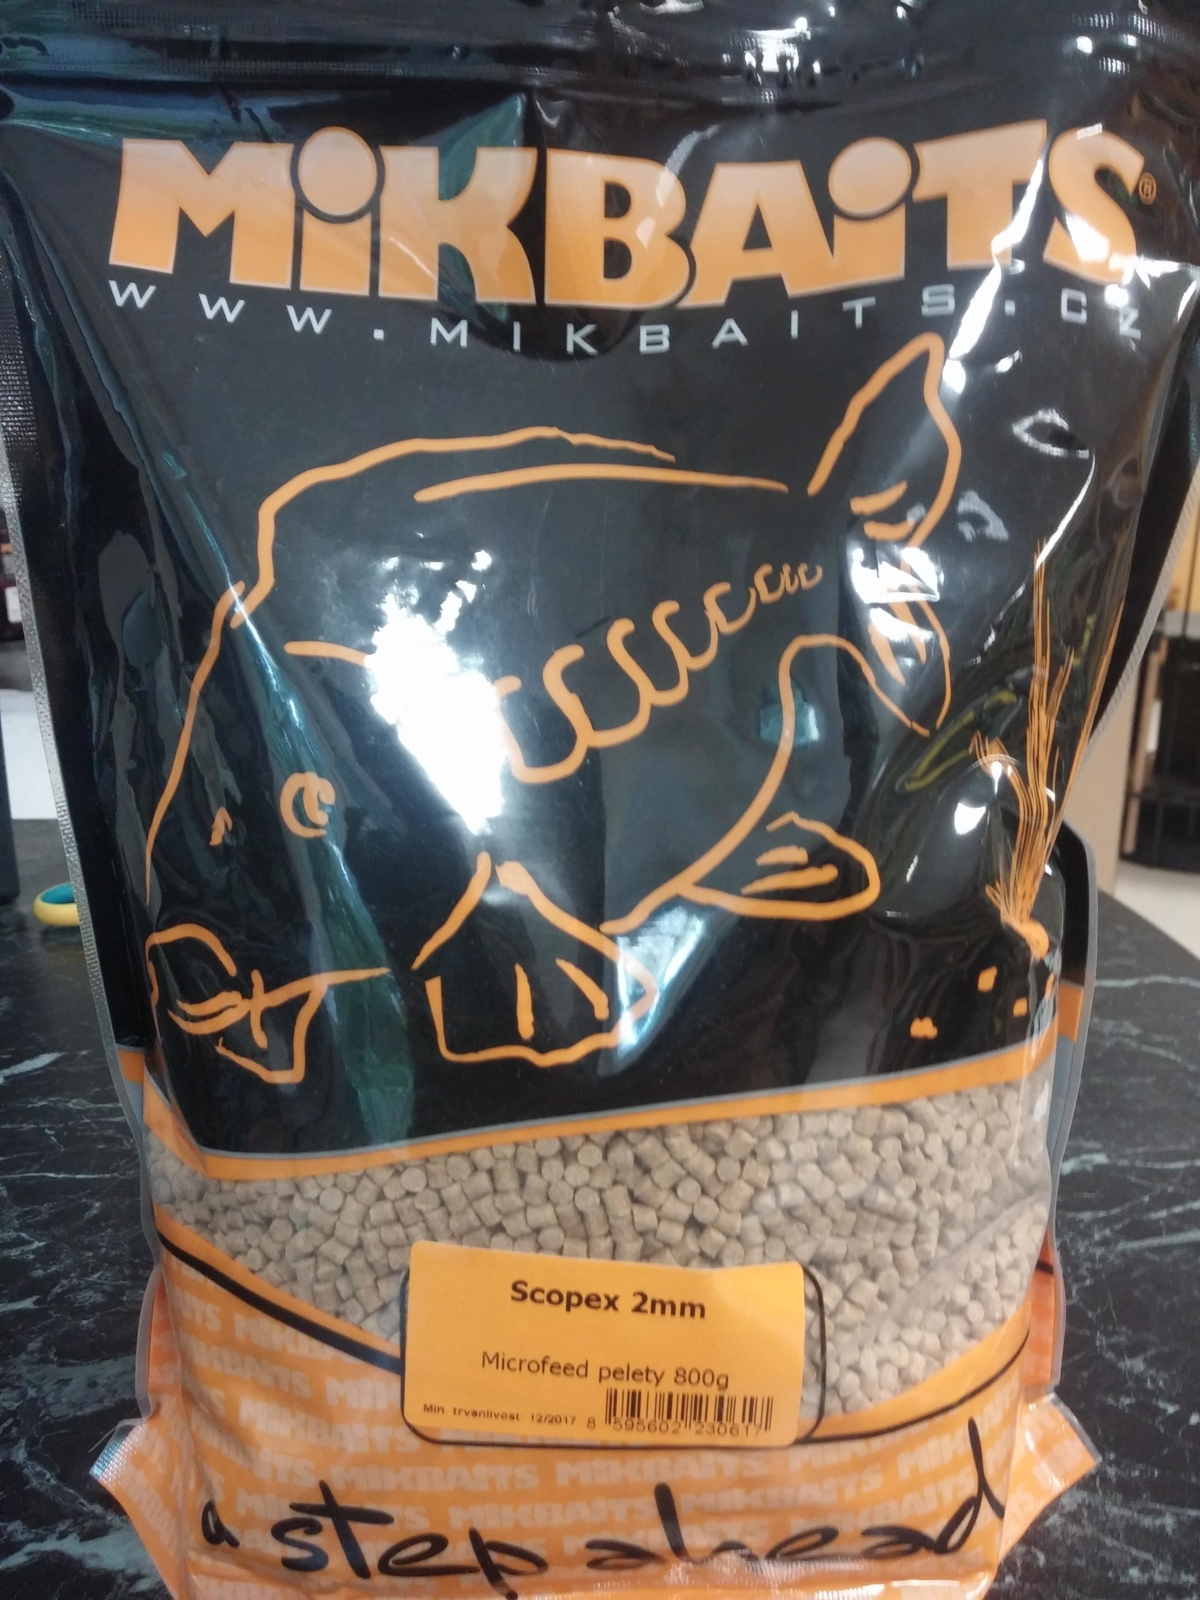 MIKBAITS Microfeed 2mm